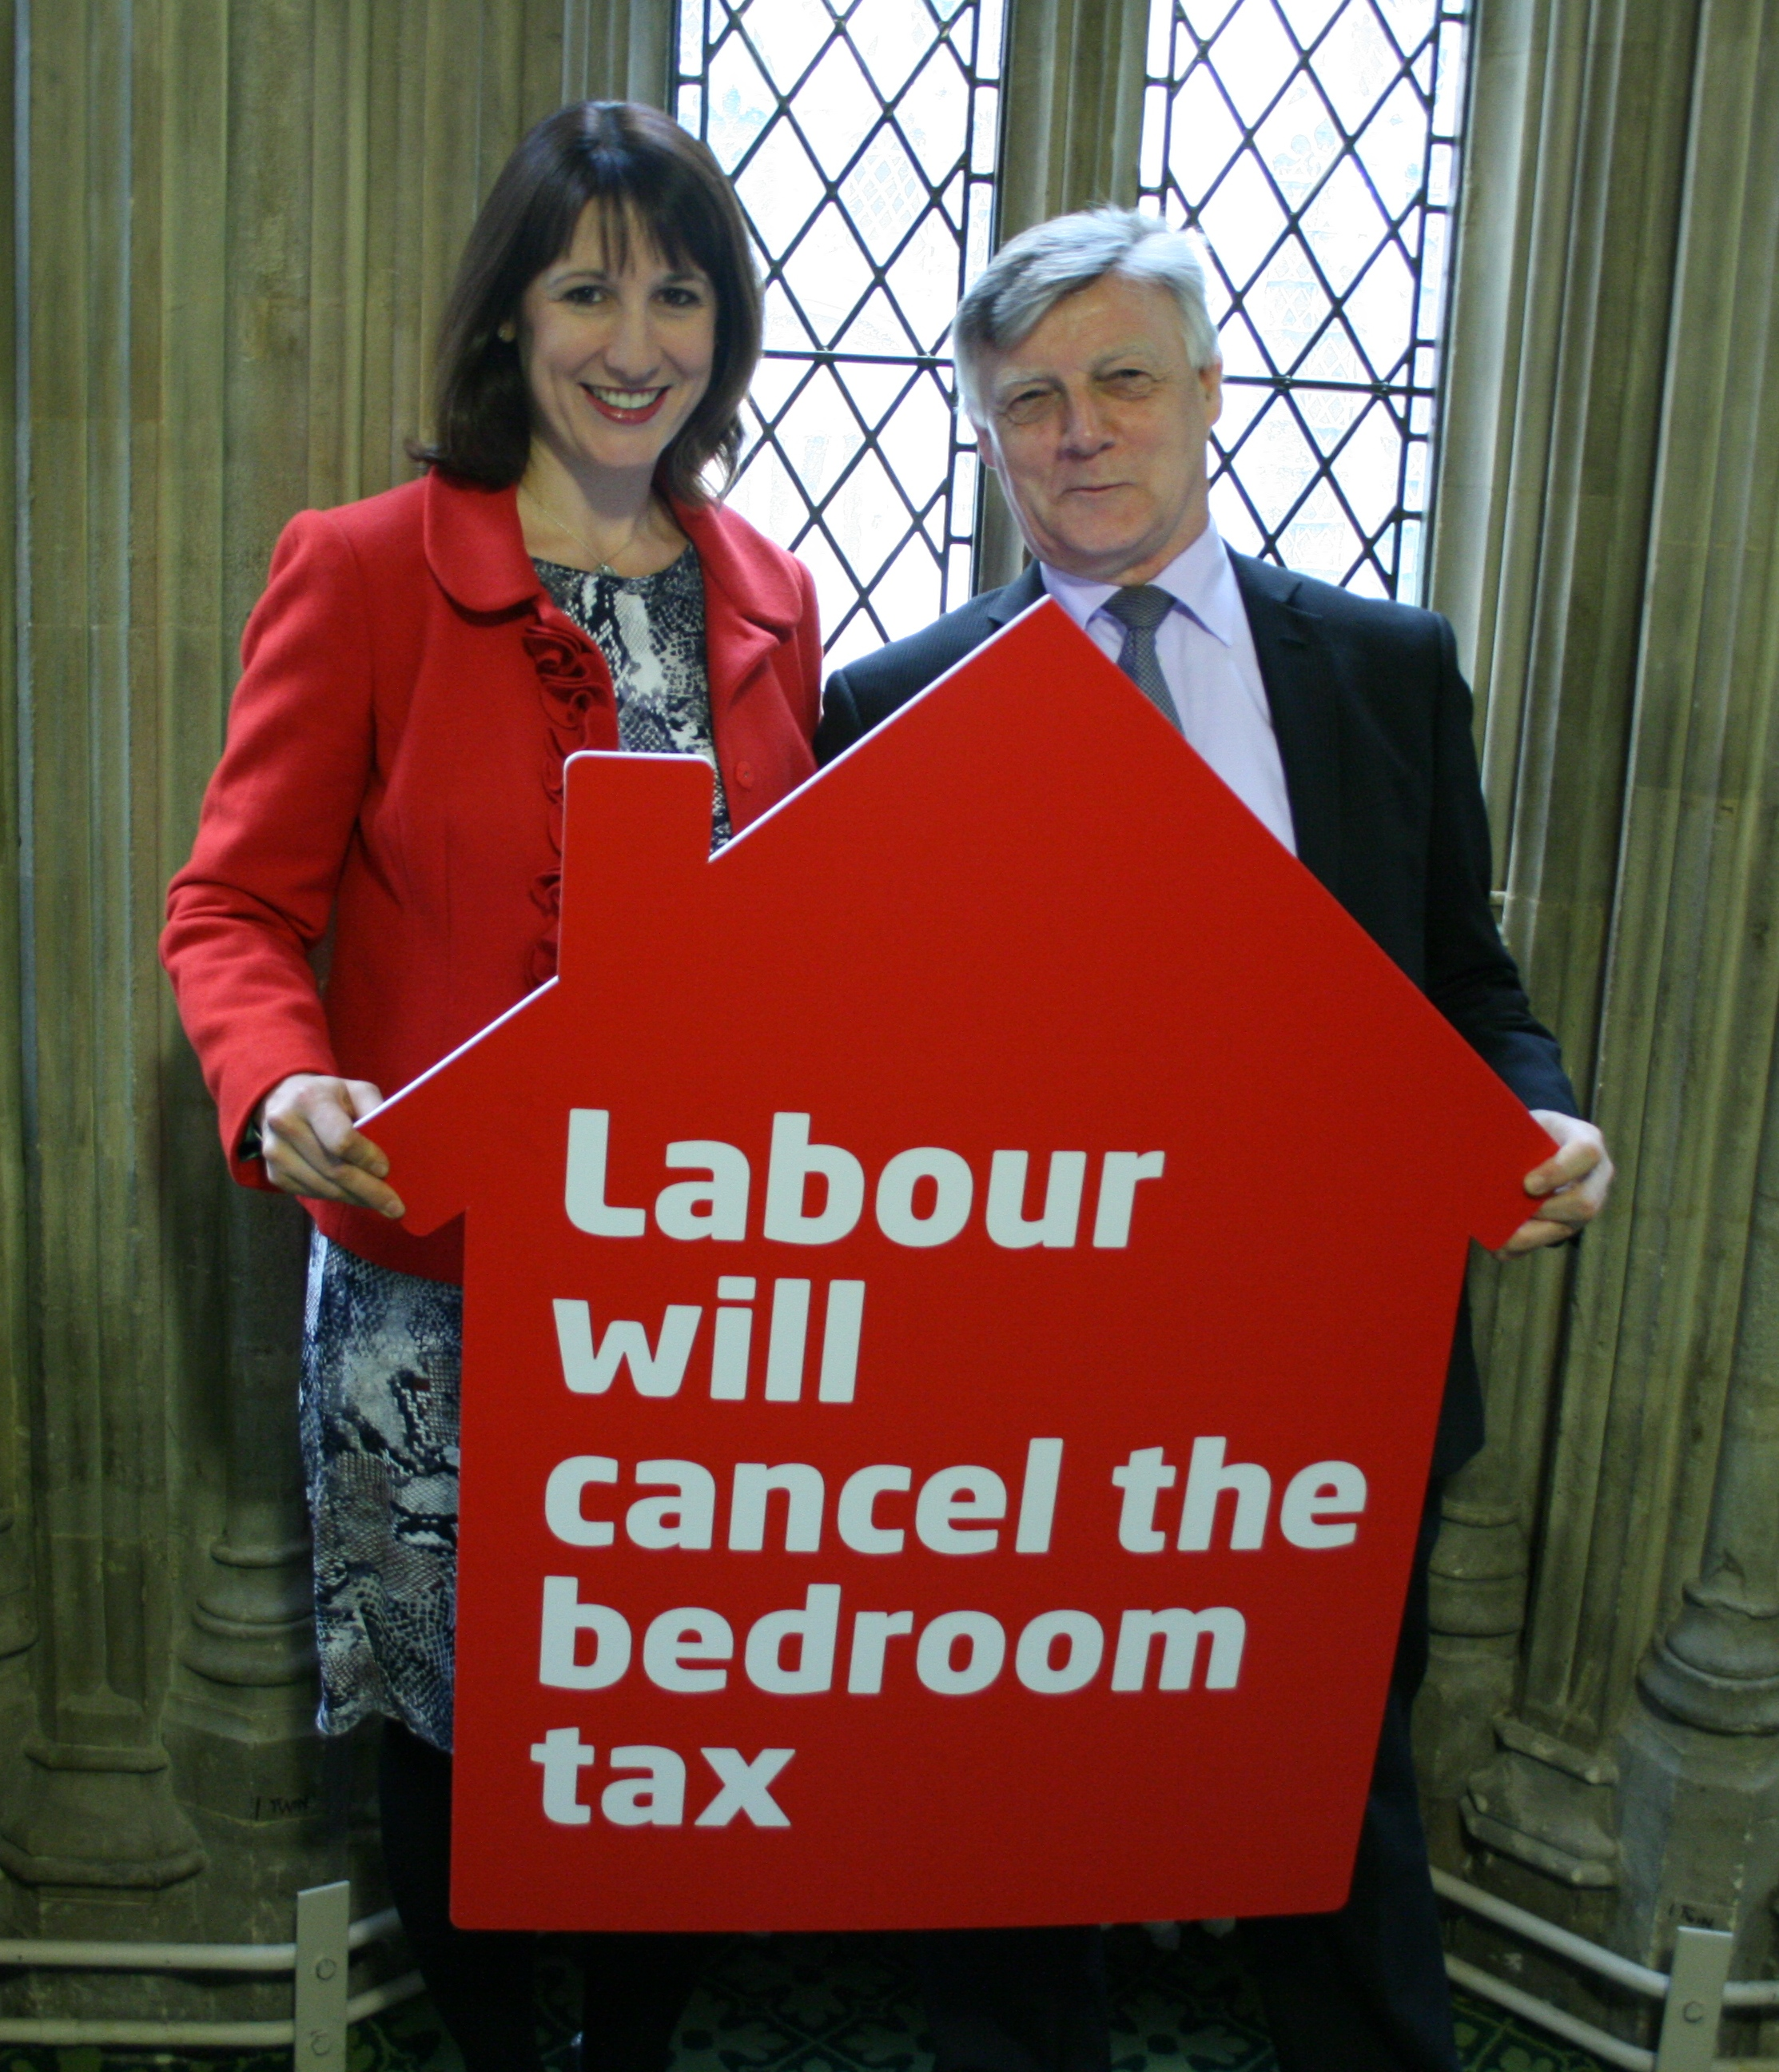 Steve_McCabe_MP_and_Rachel_Reeves_MP_pledge_to_scrap_Bedroom_Tax.JPG